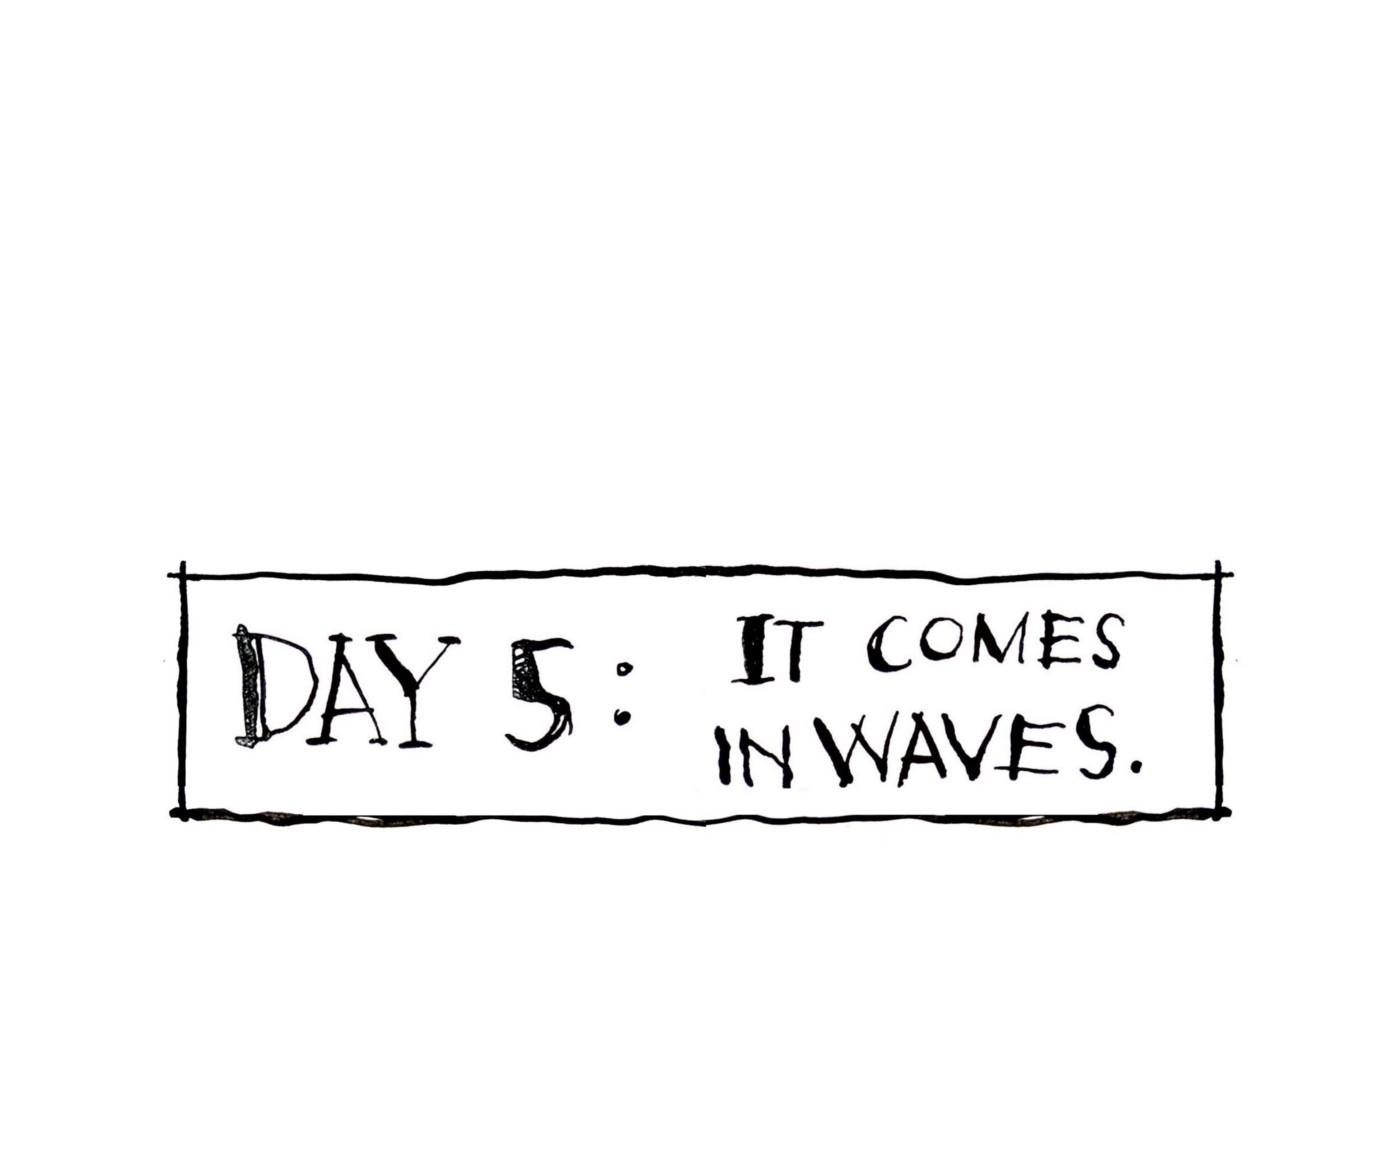 DAY 5: It comes in waves